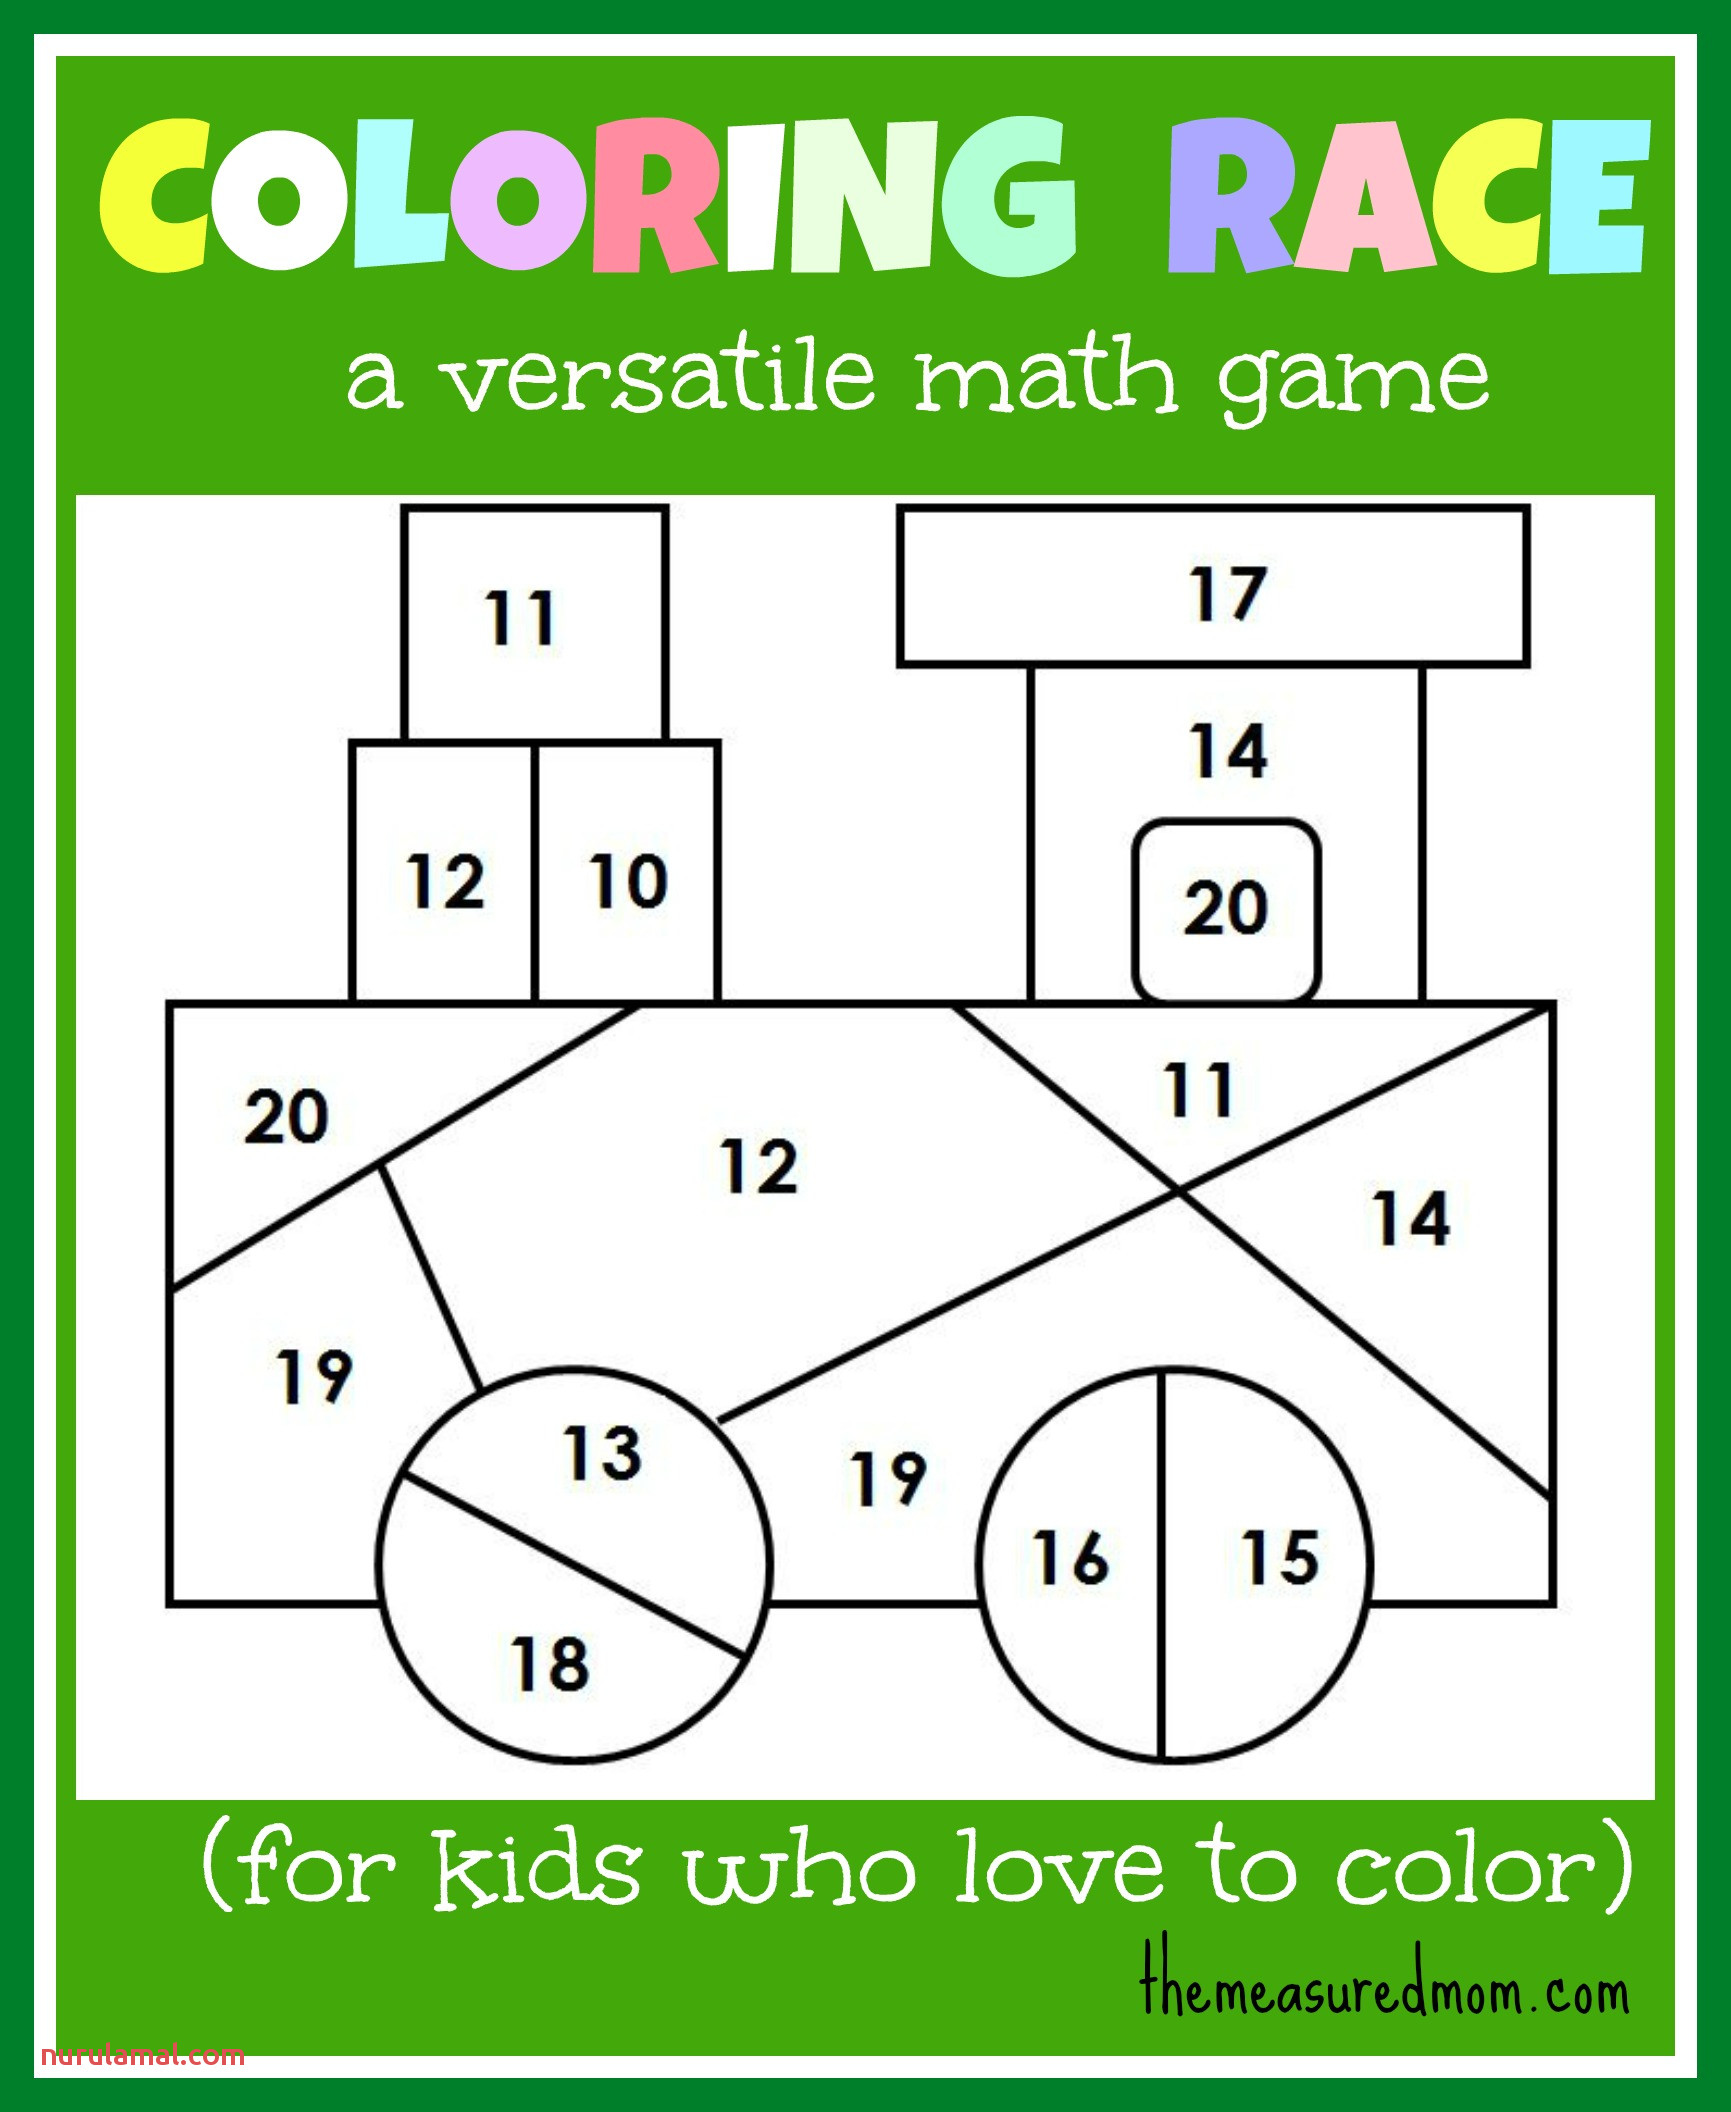 Math Game for Kids Coloring Race Bines Math and Coloring